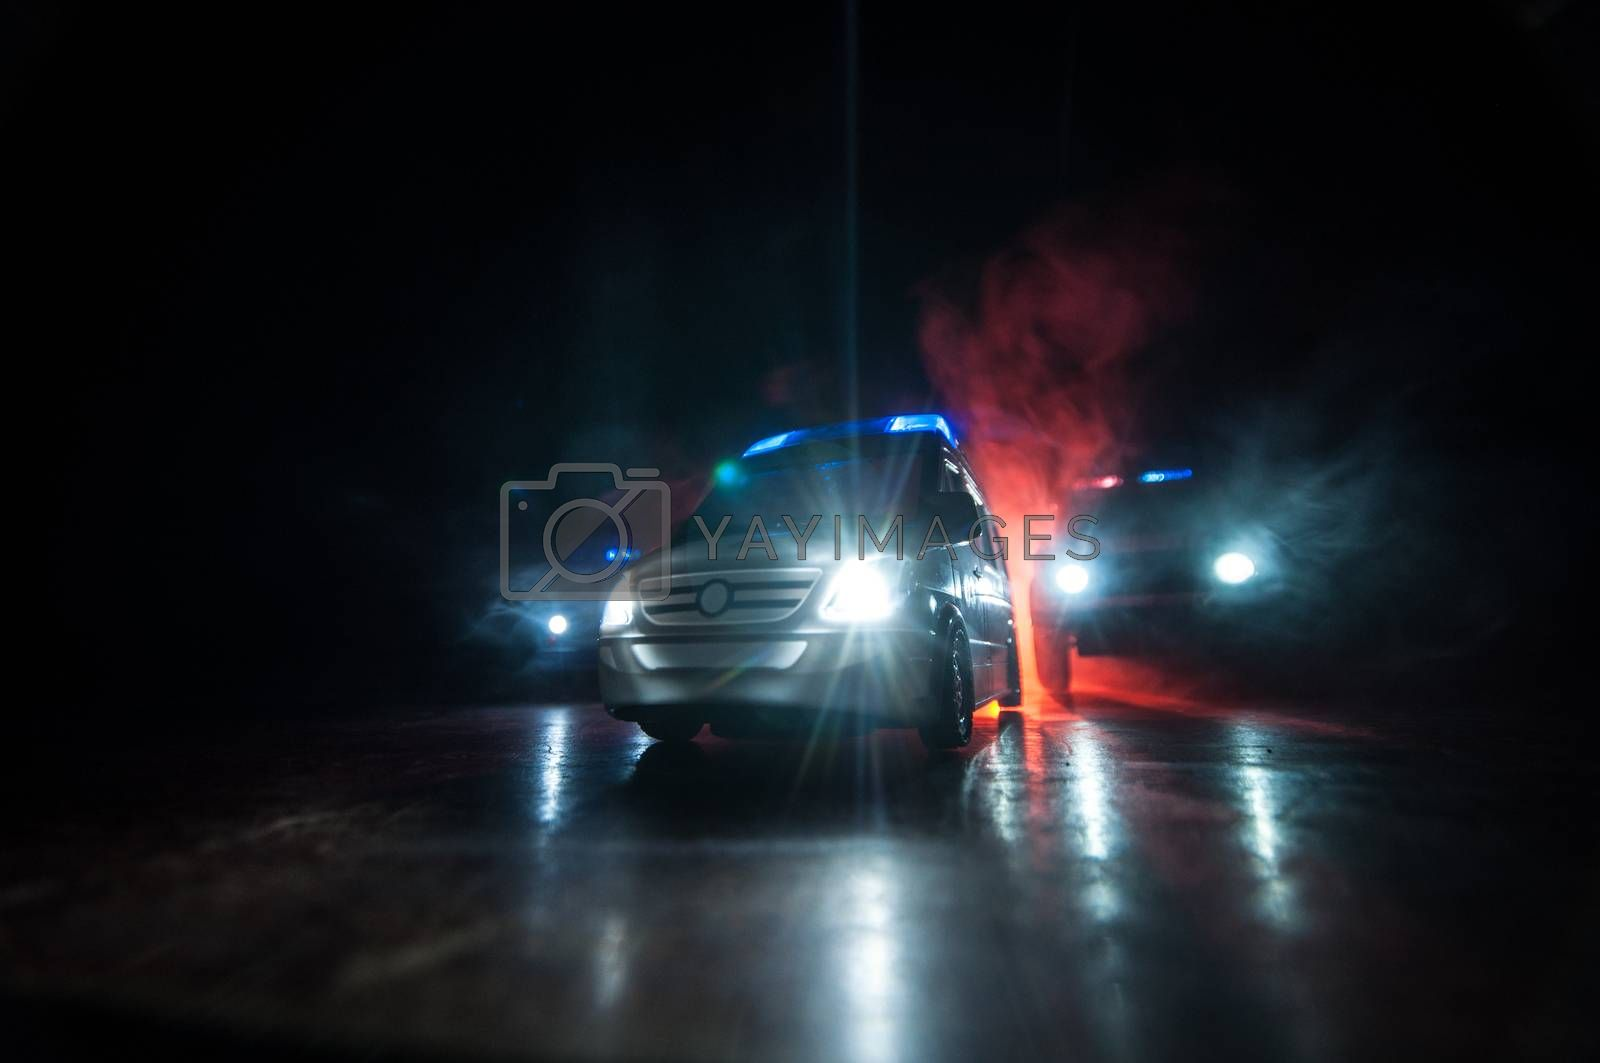 Corona virus concept with Ambulance car. Stay home for precautionary measures to prevent from corona virus. Ambulance car on dark misty background. Creative artwork decoration. Selective focus